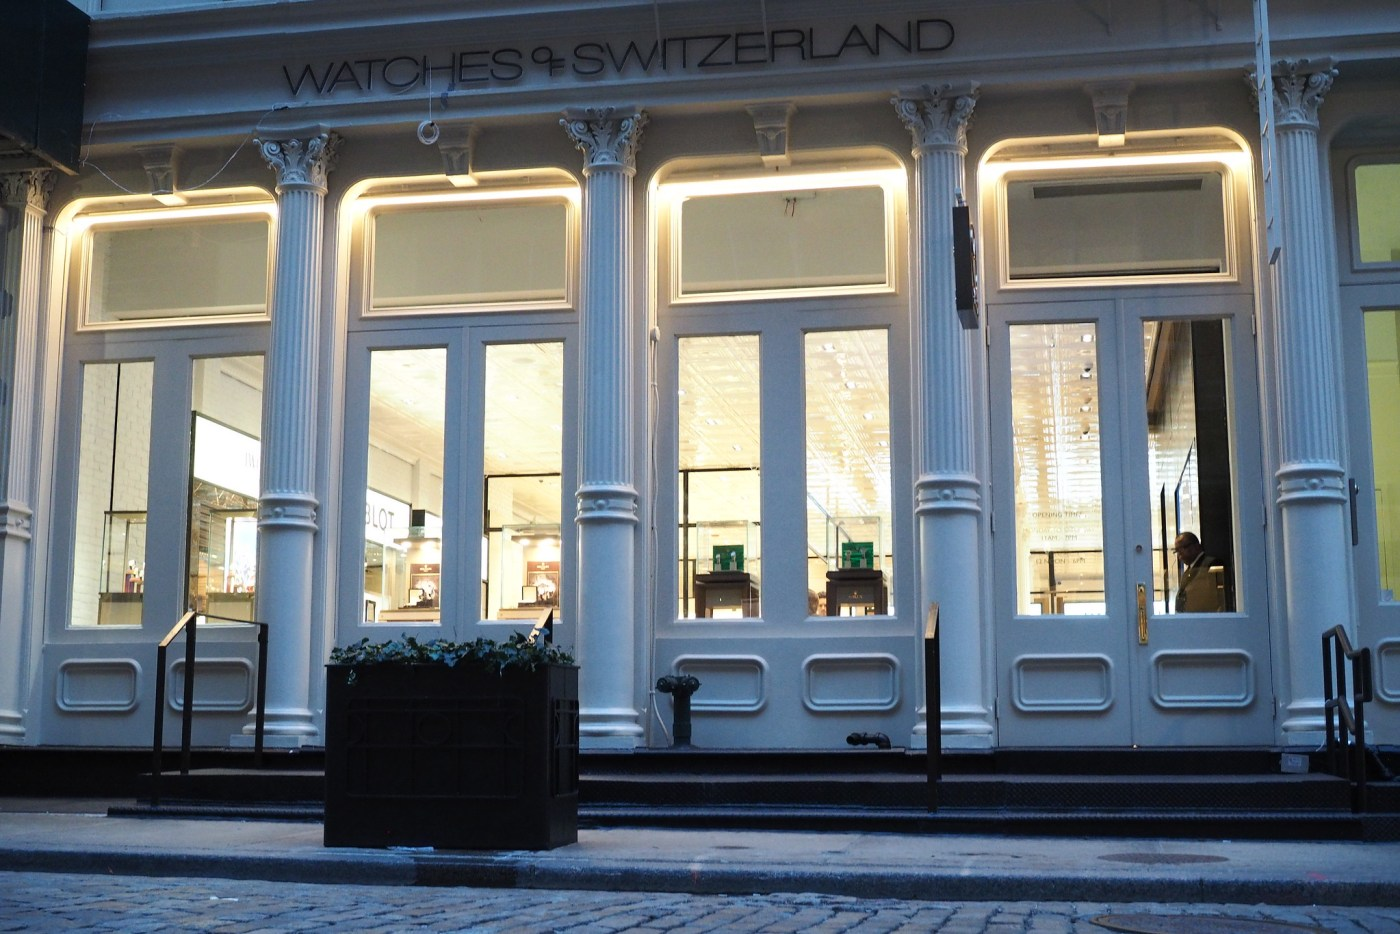 Watches of Switzerland located at 60 Greene Street in SoHo